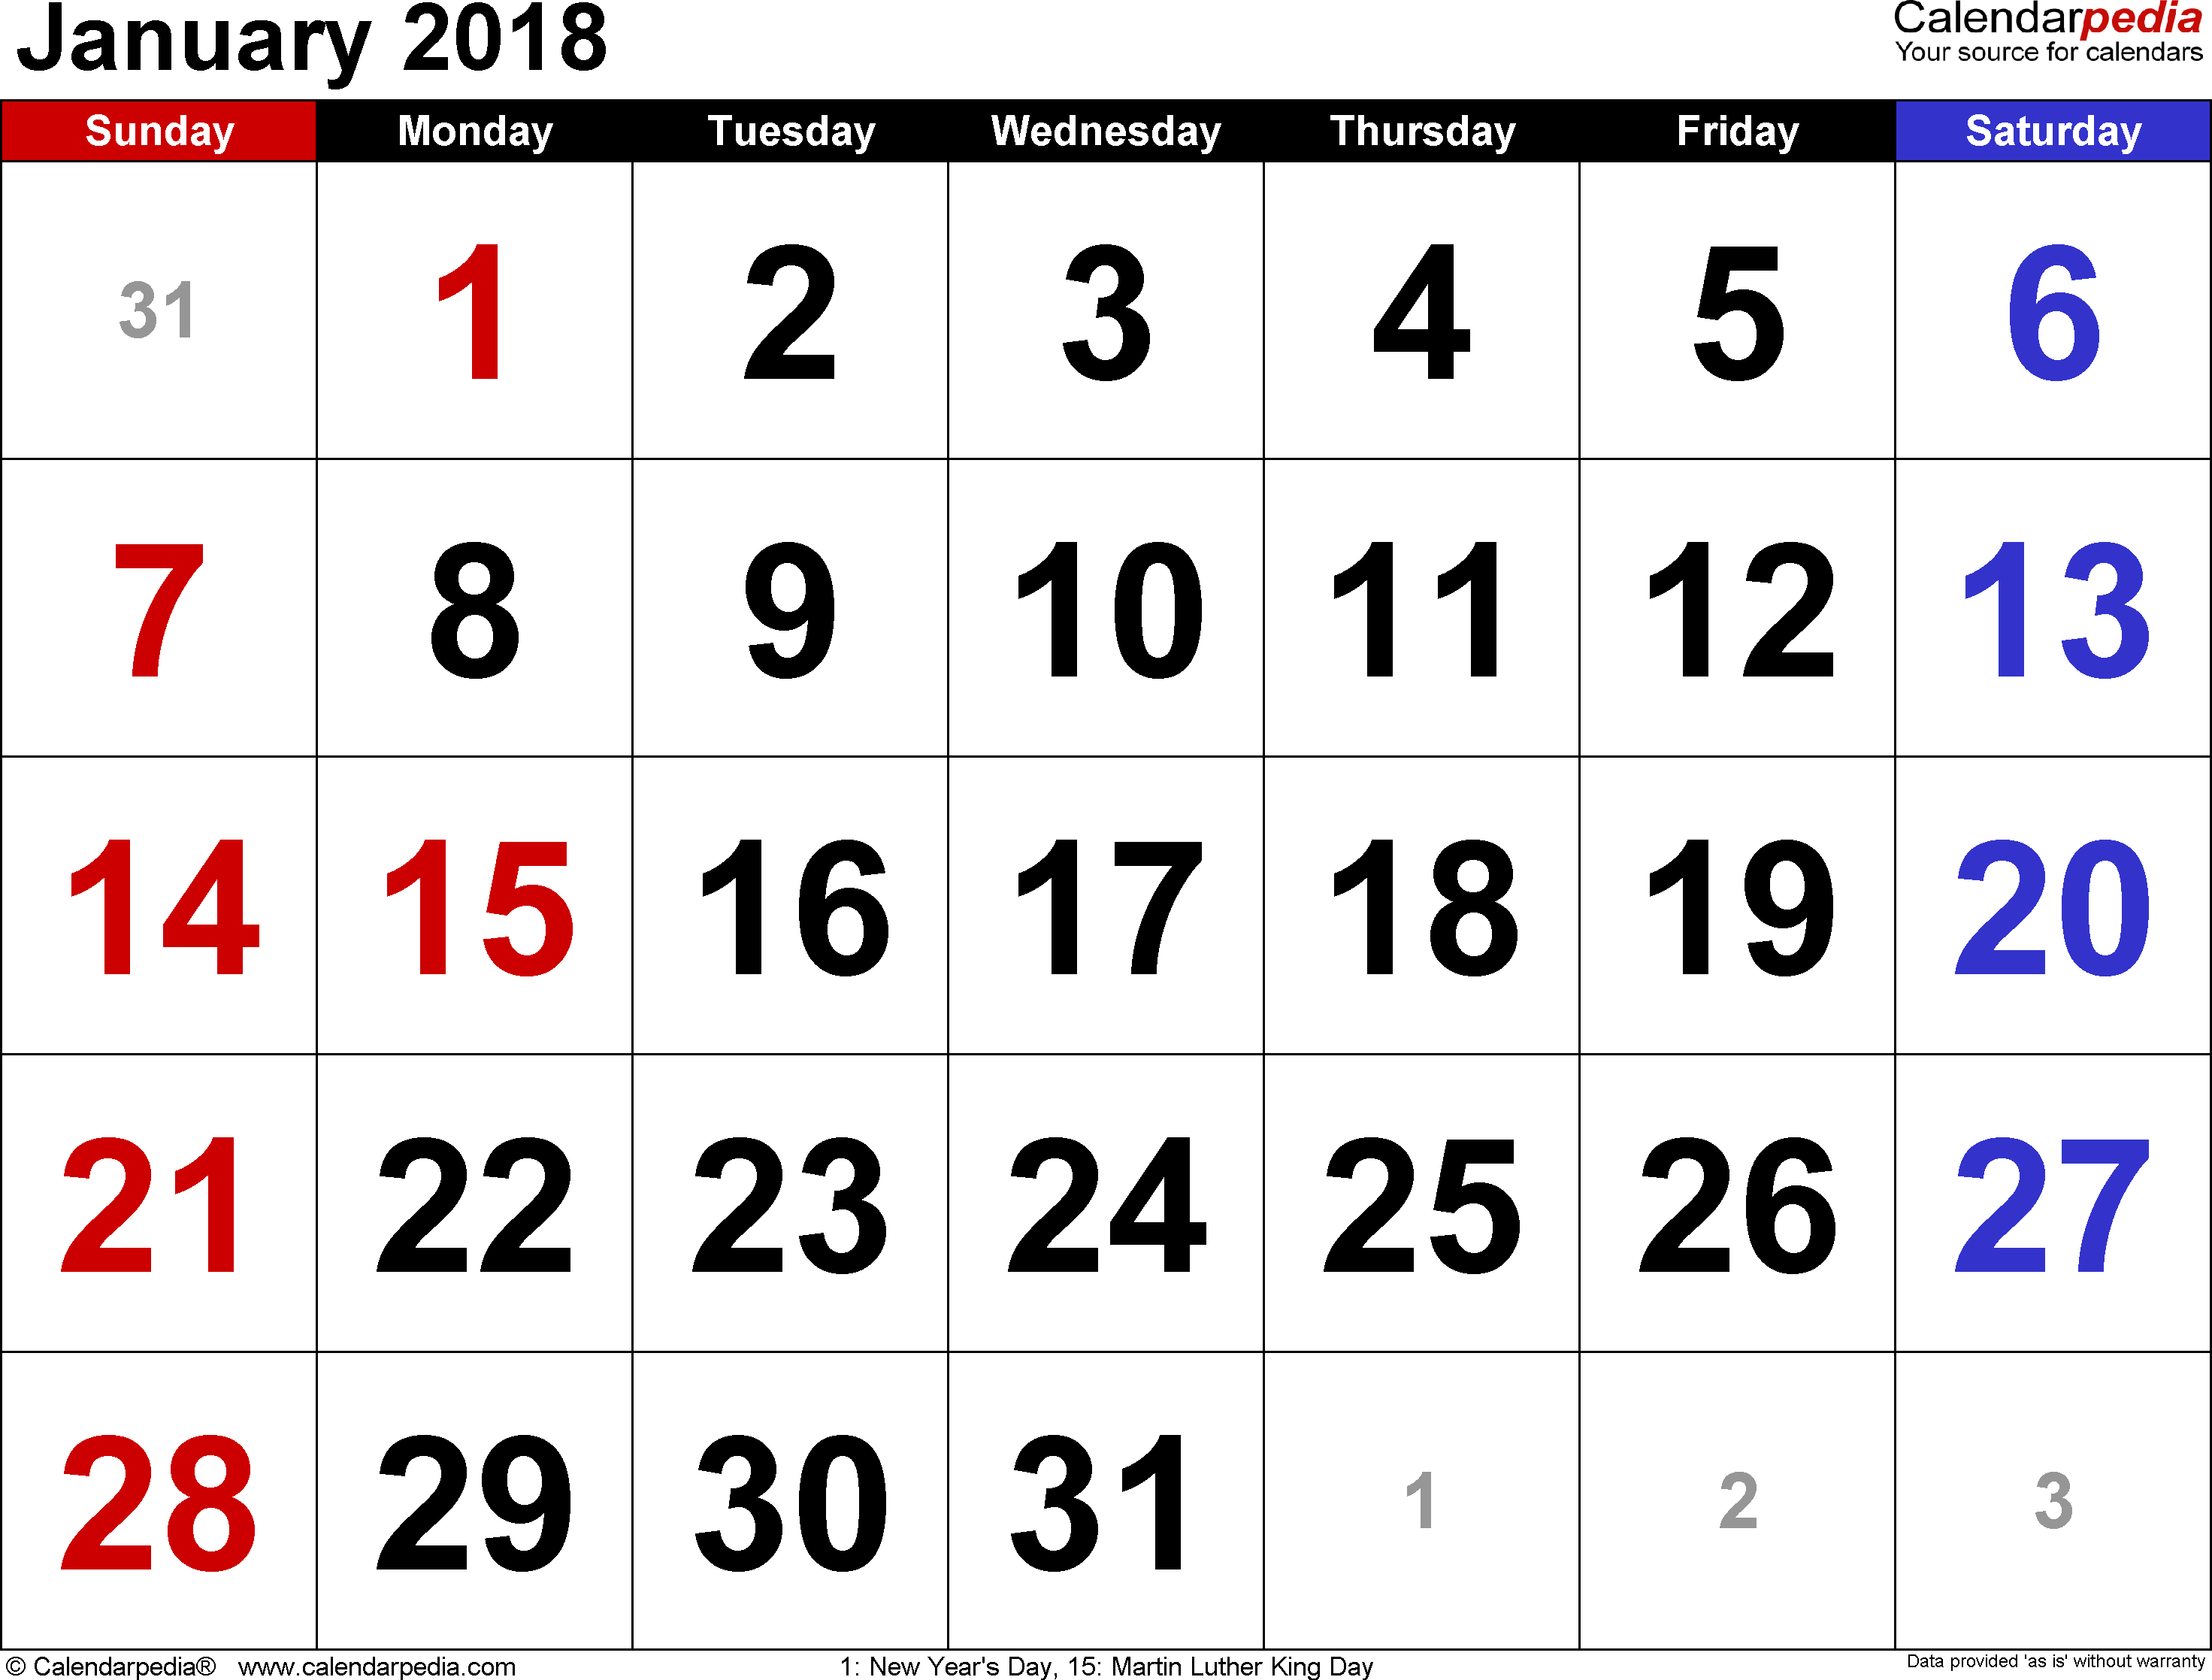 January 2018 Calendars for Word, Excel & PDF